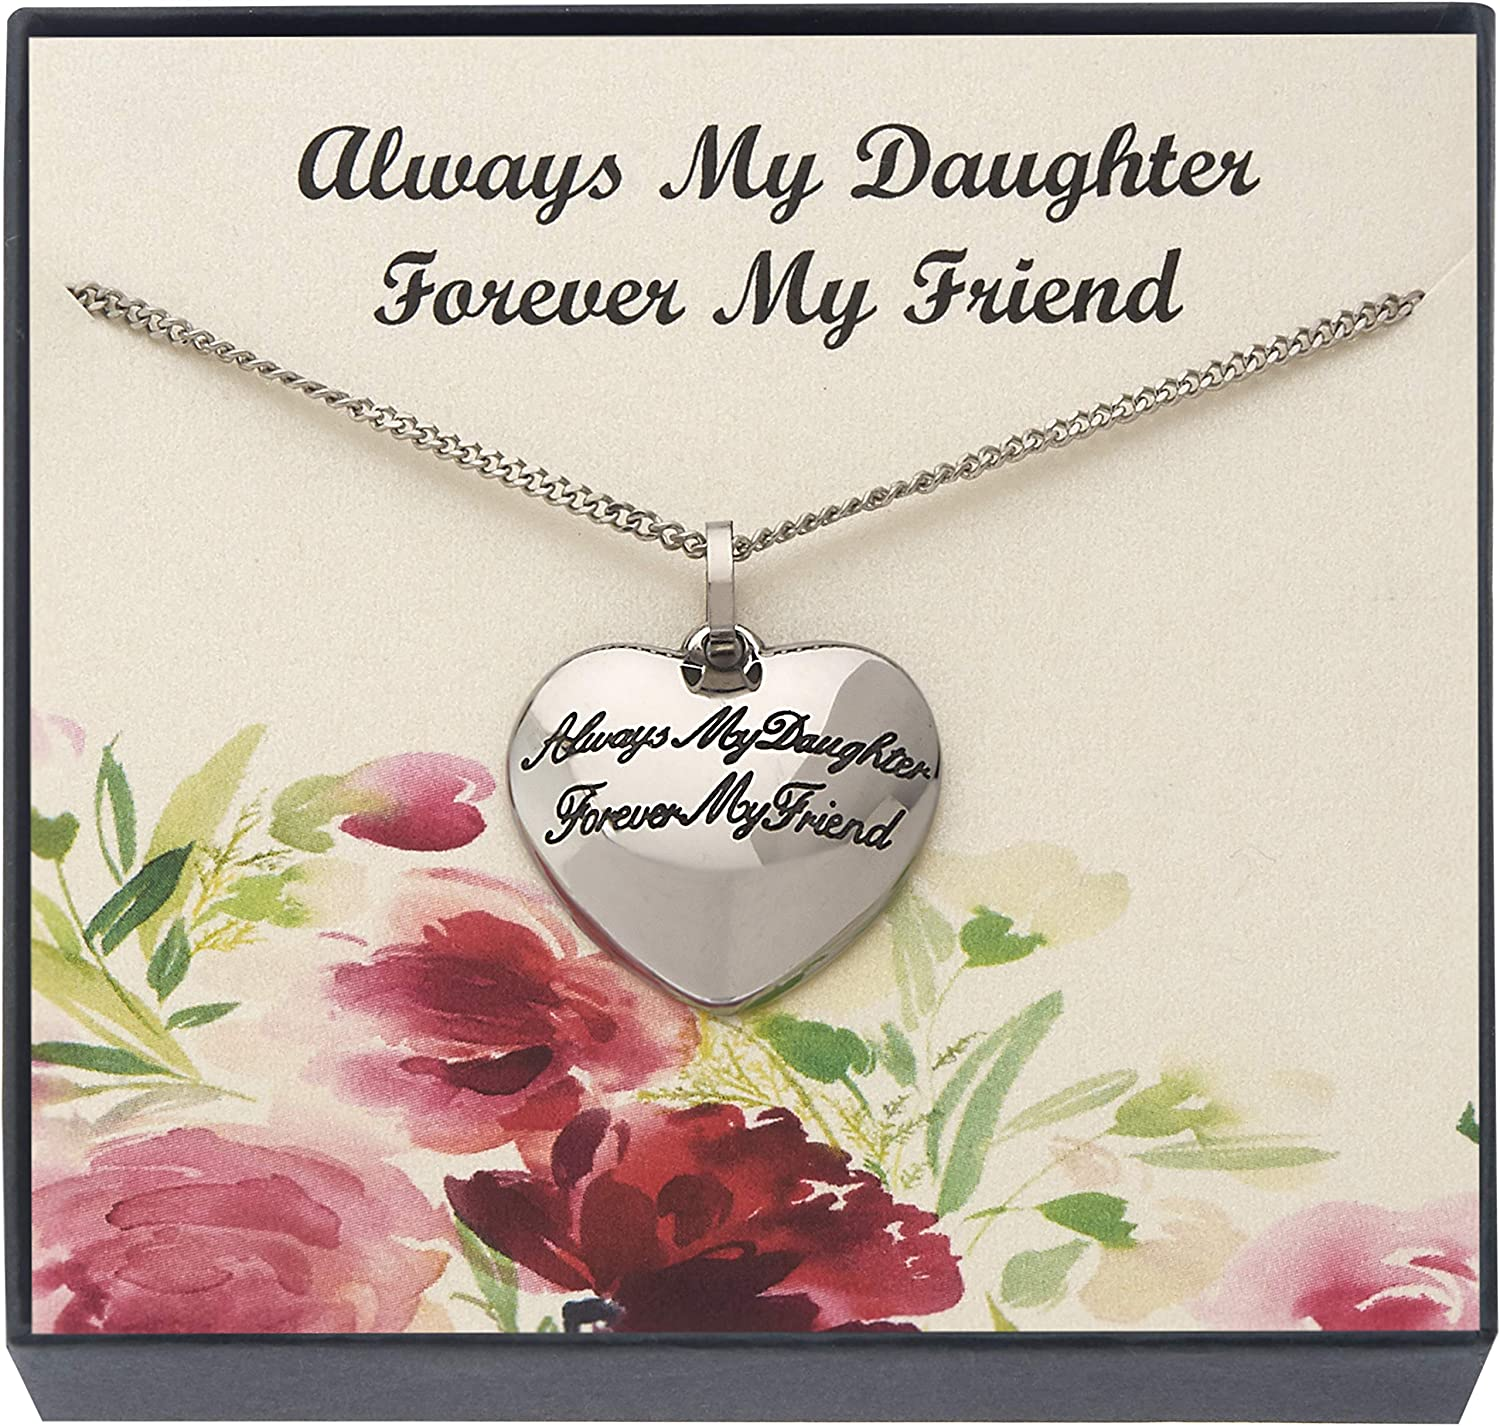 Mom To Daughter Necklace Jewelry Gift Love Mom To Daughter Forever Infinity Friendship Necklace For Xmas Birthday Wedding Christmas  Gifts